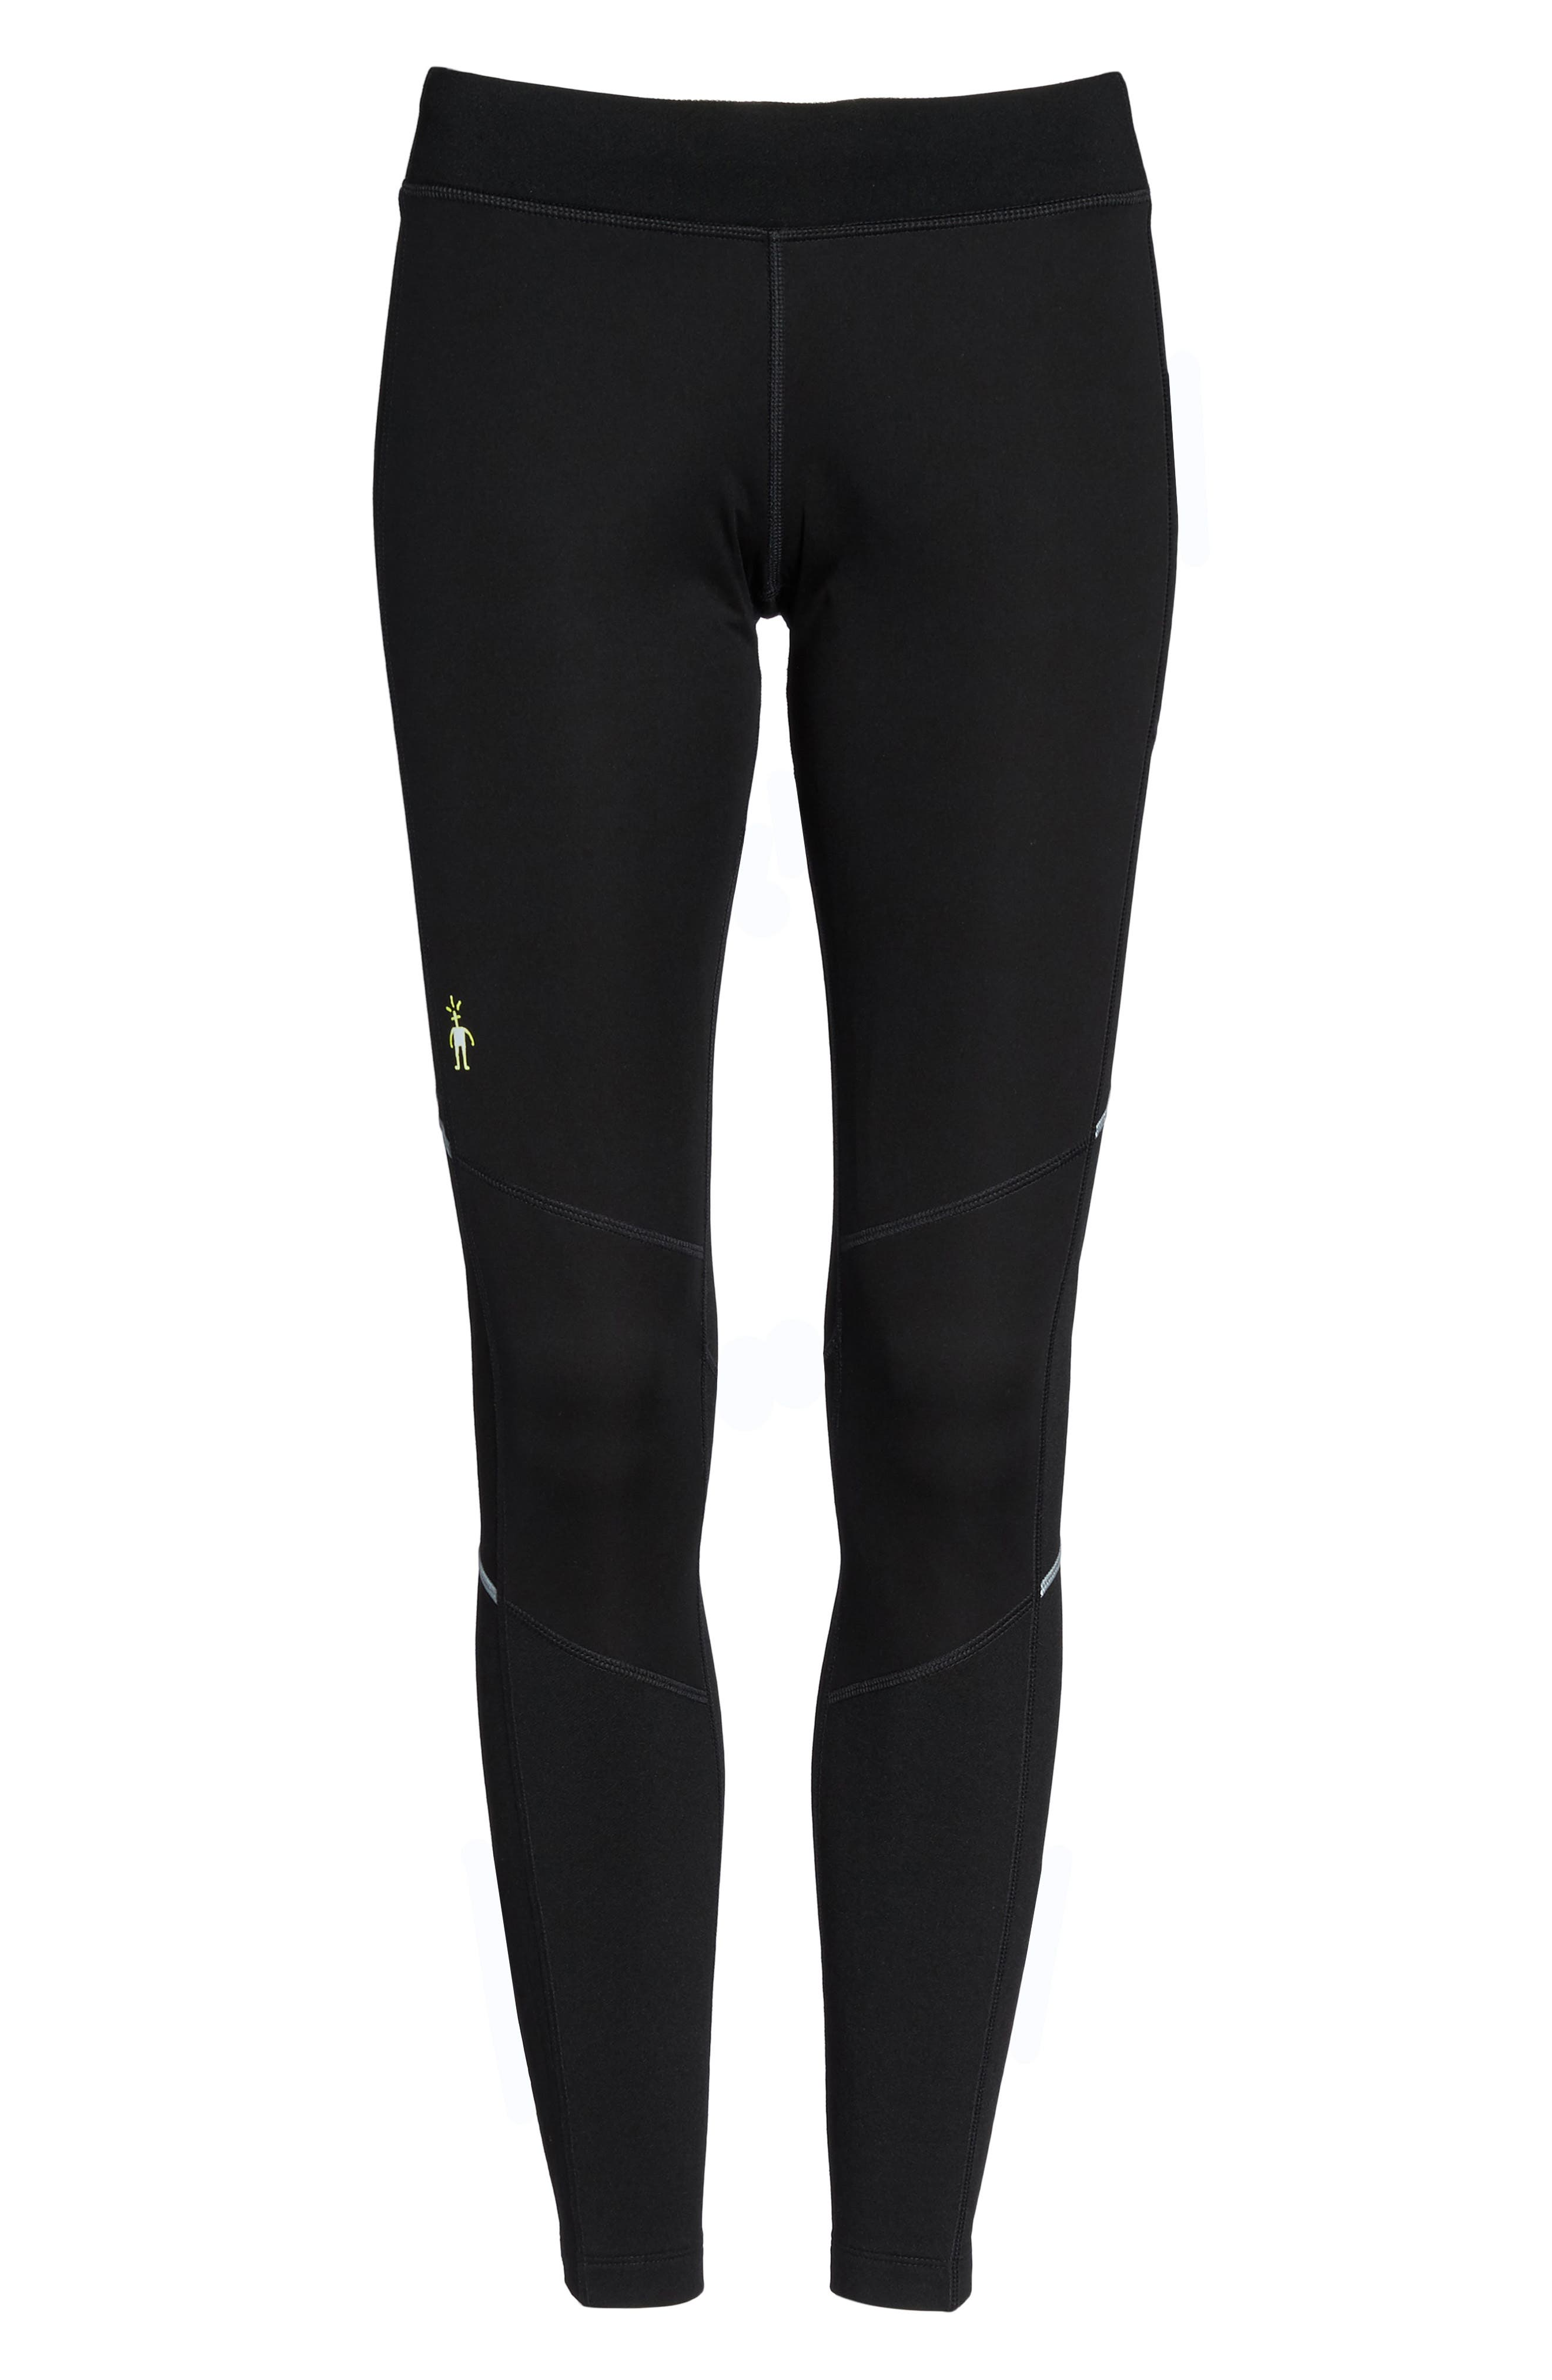 PhD Wind Tights,                             Alternate thumbnail 7, color,                             001